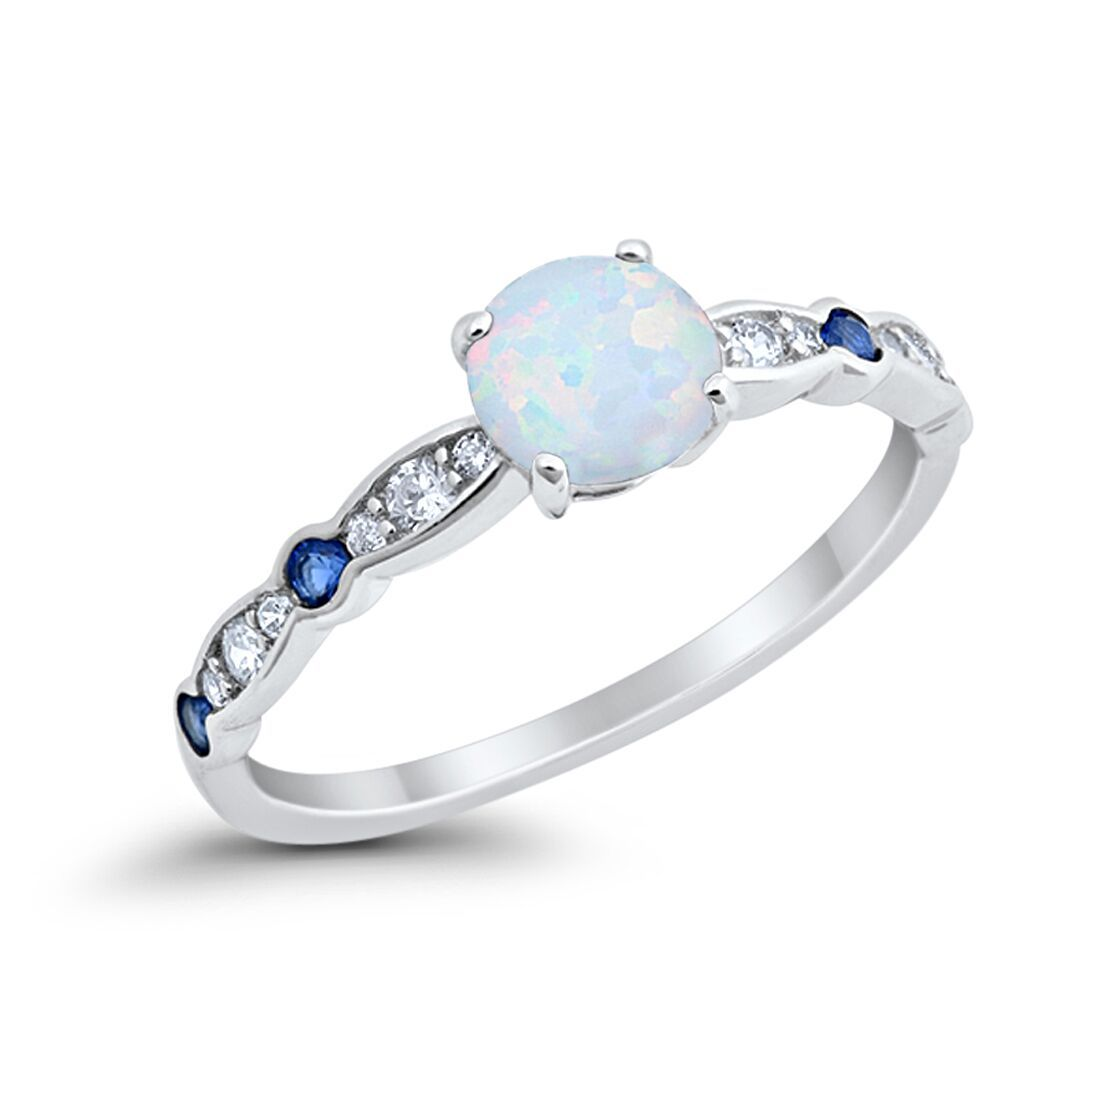 Fancy Engagement Ring Lab Created White Opal Round 925 Sterling Silver